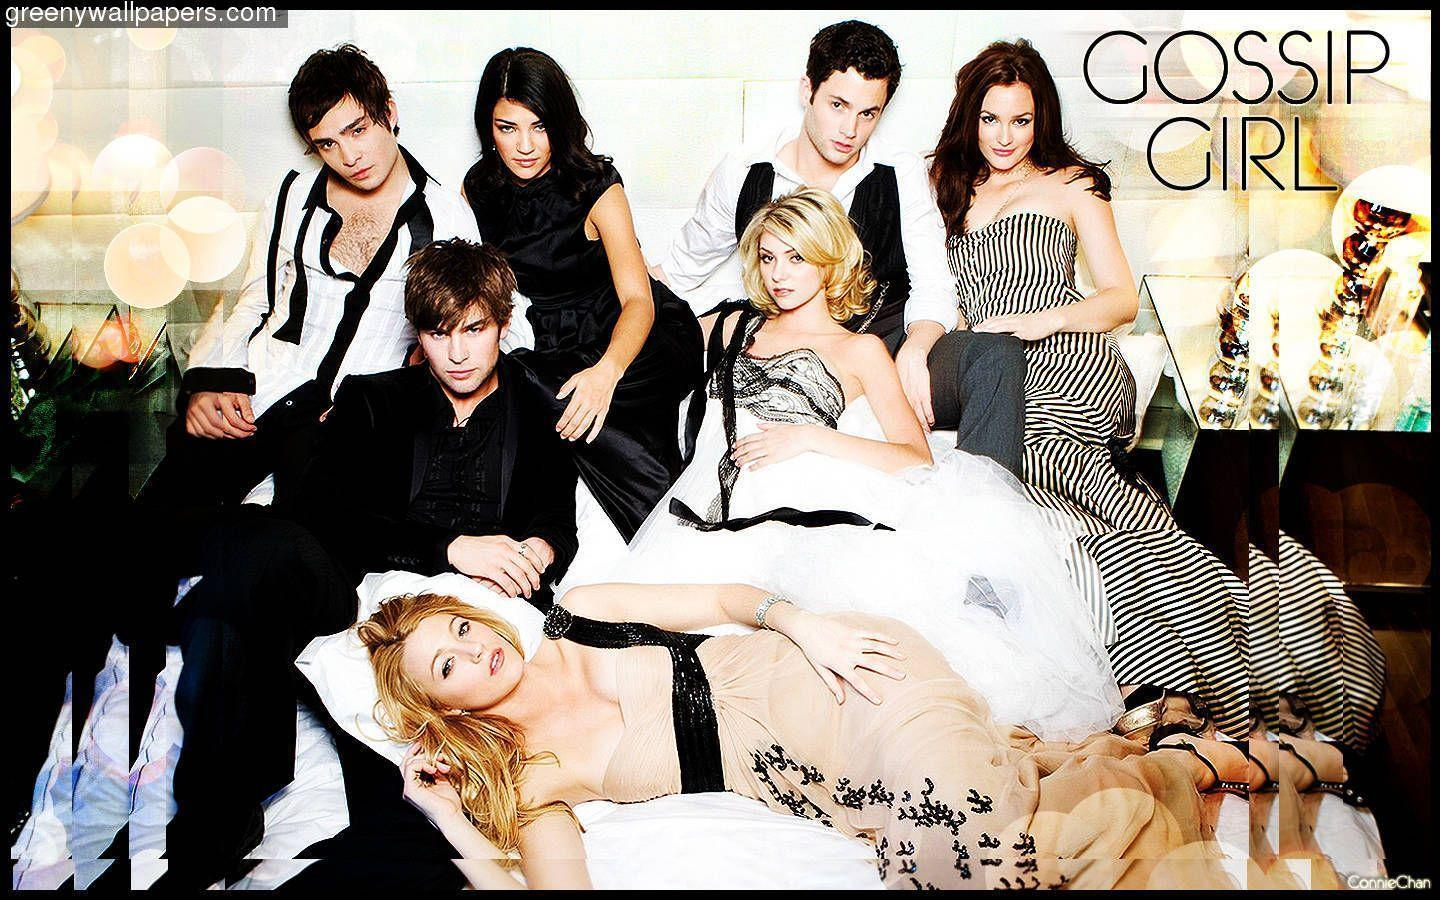 Gossip Girl Wallpapers, Gossip Girl Images